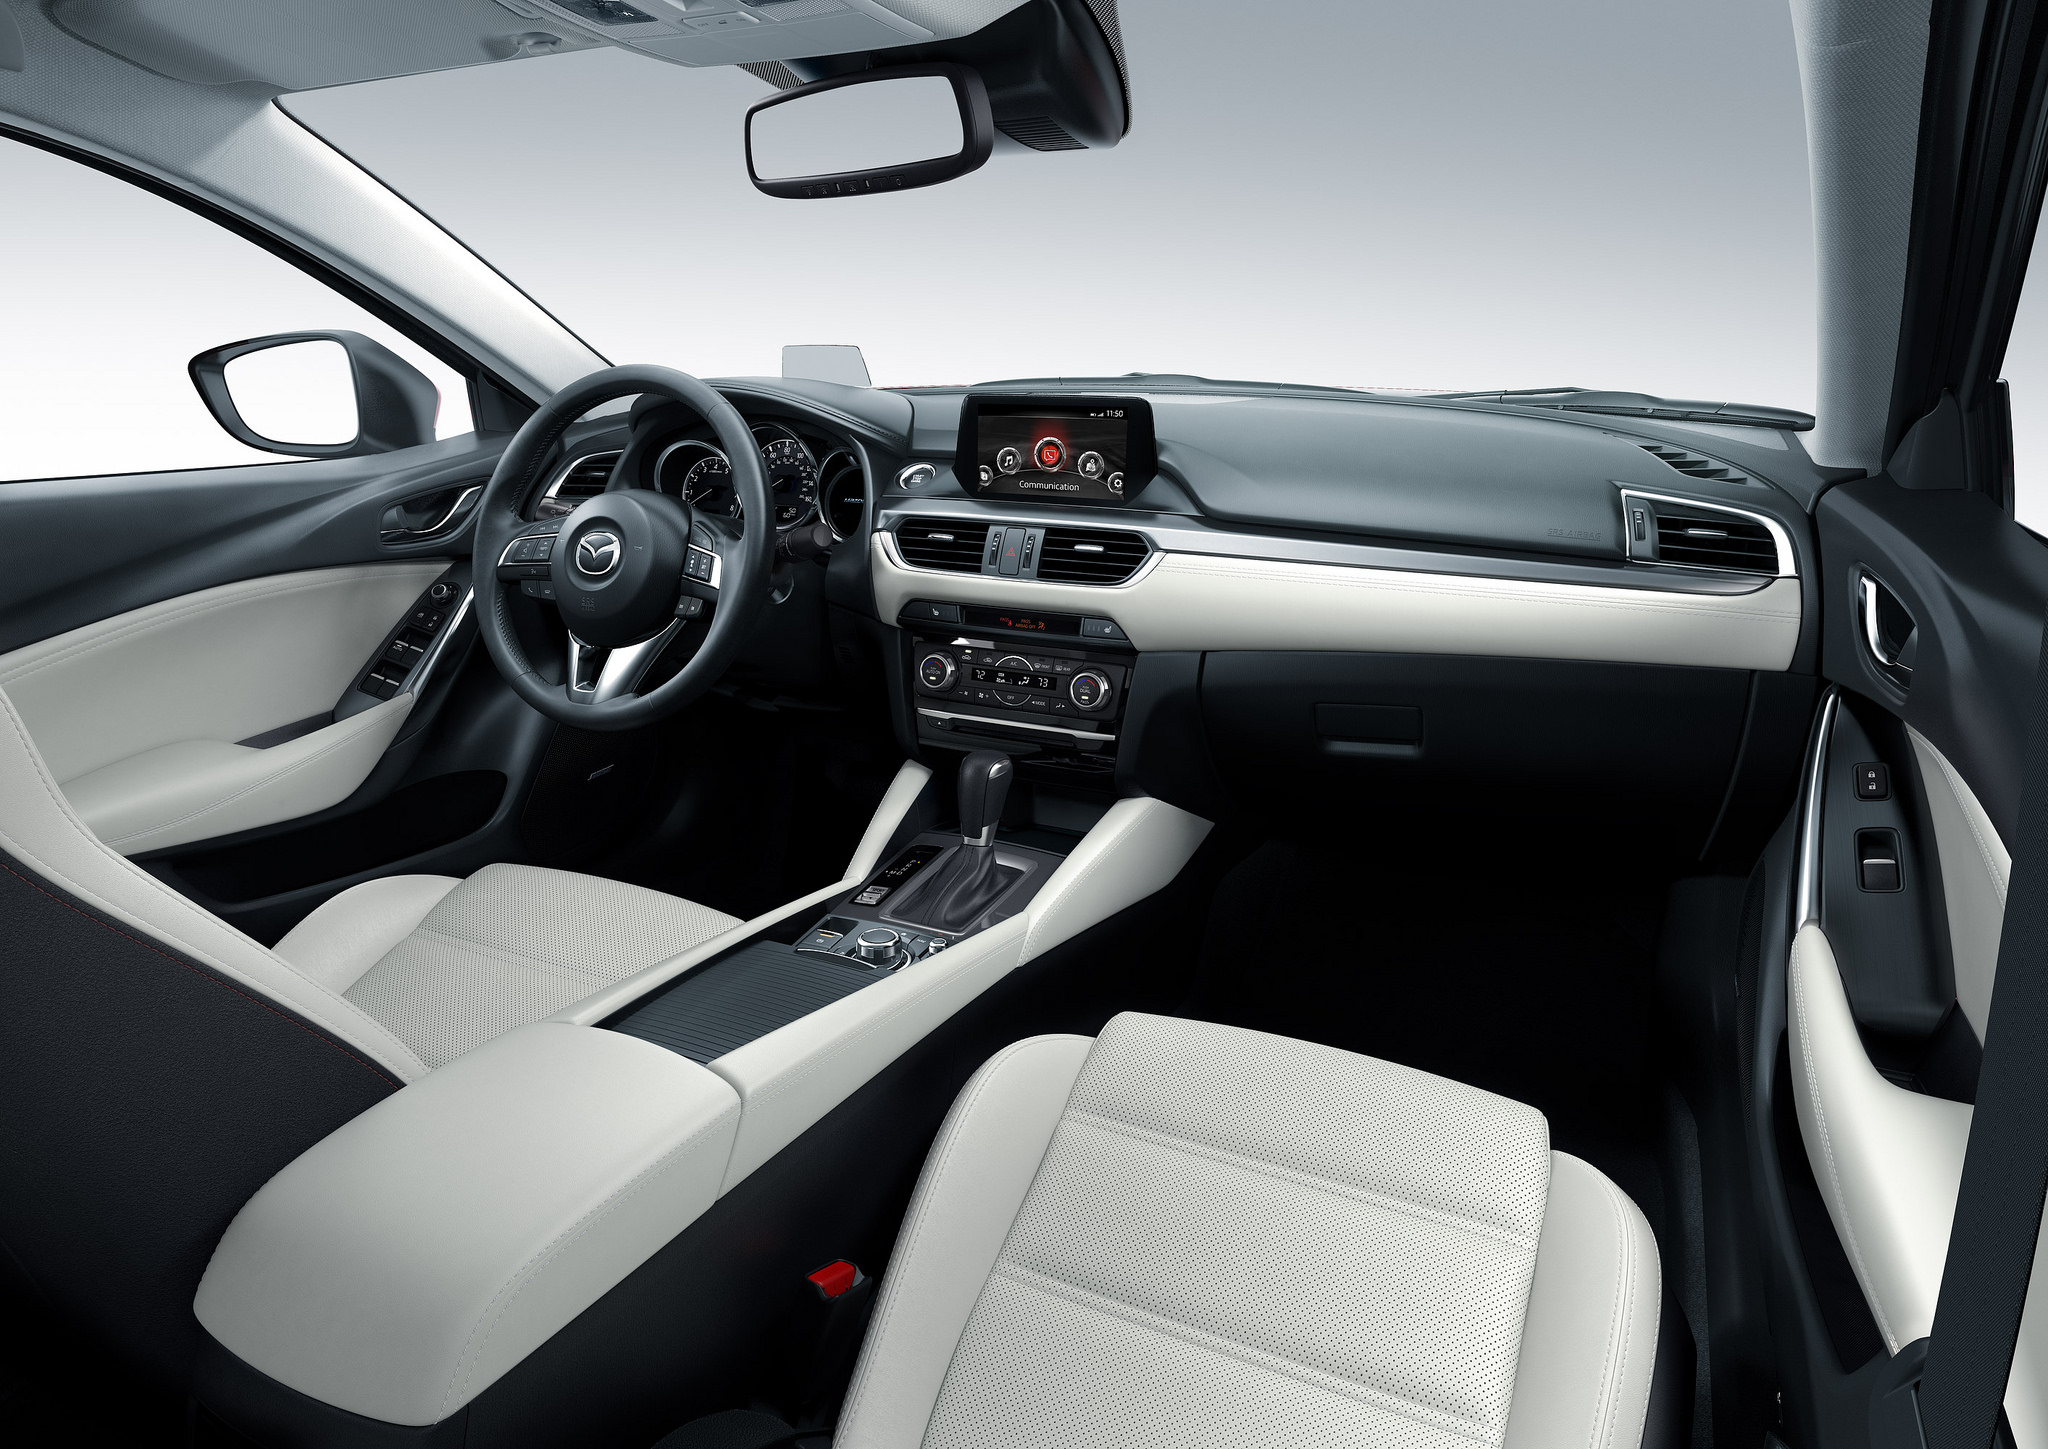 Ward's Best Interiors: 2016 Mazda6